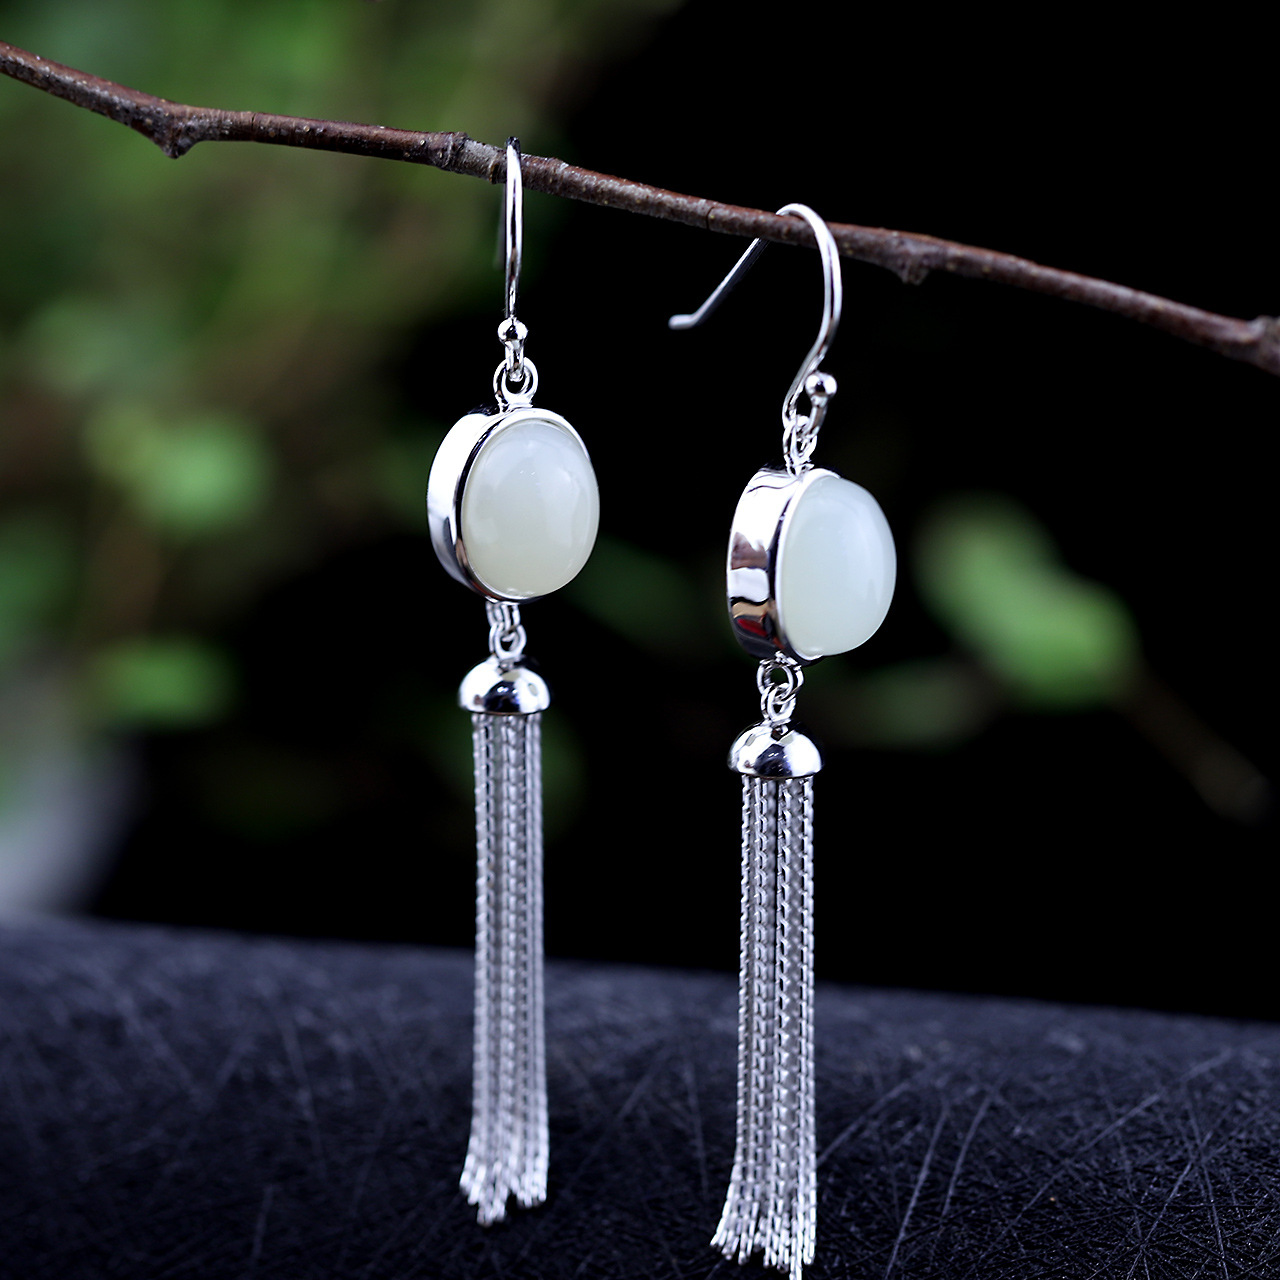 Character Silver Design, S925 Silver Jewelry, Earrings Wholesale, Folk Style Lady Tassel And Tin Jade Earrings. the character of silver s925 silver jewelry fashion exquisite lady earrings blue sandstone section